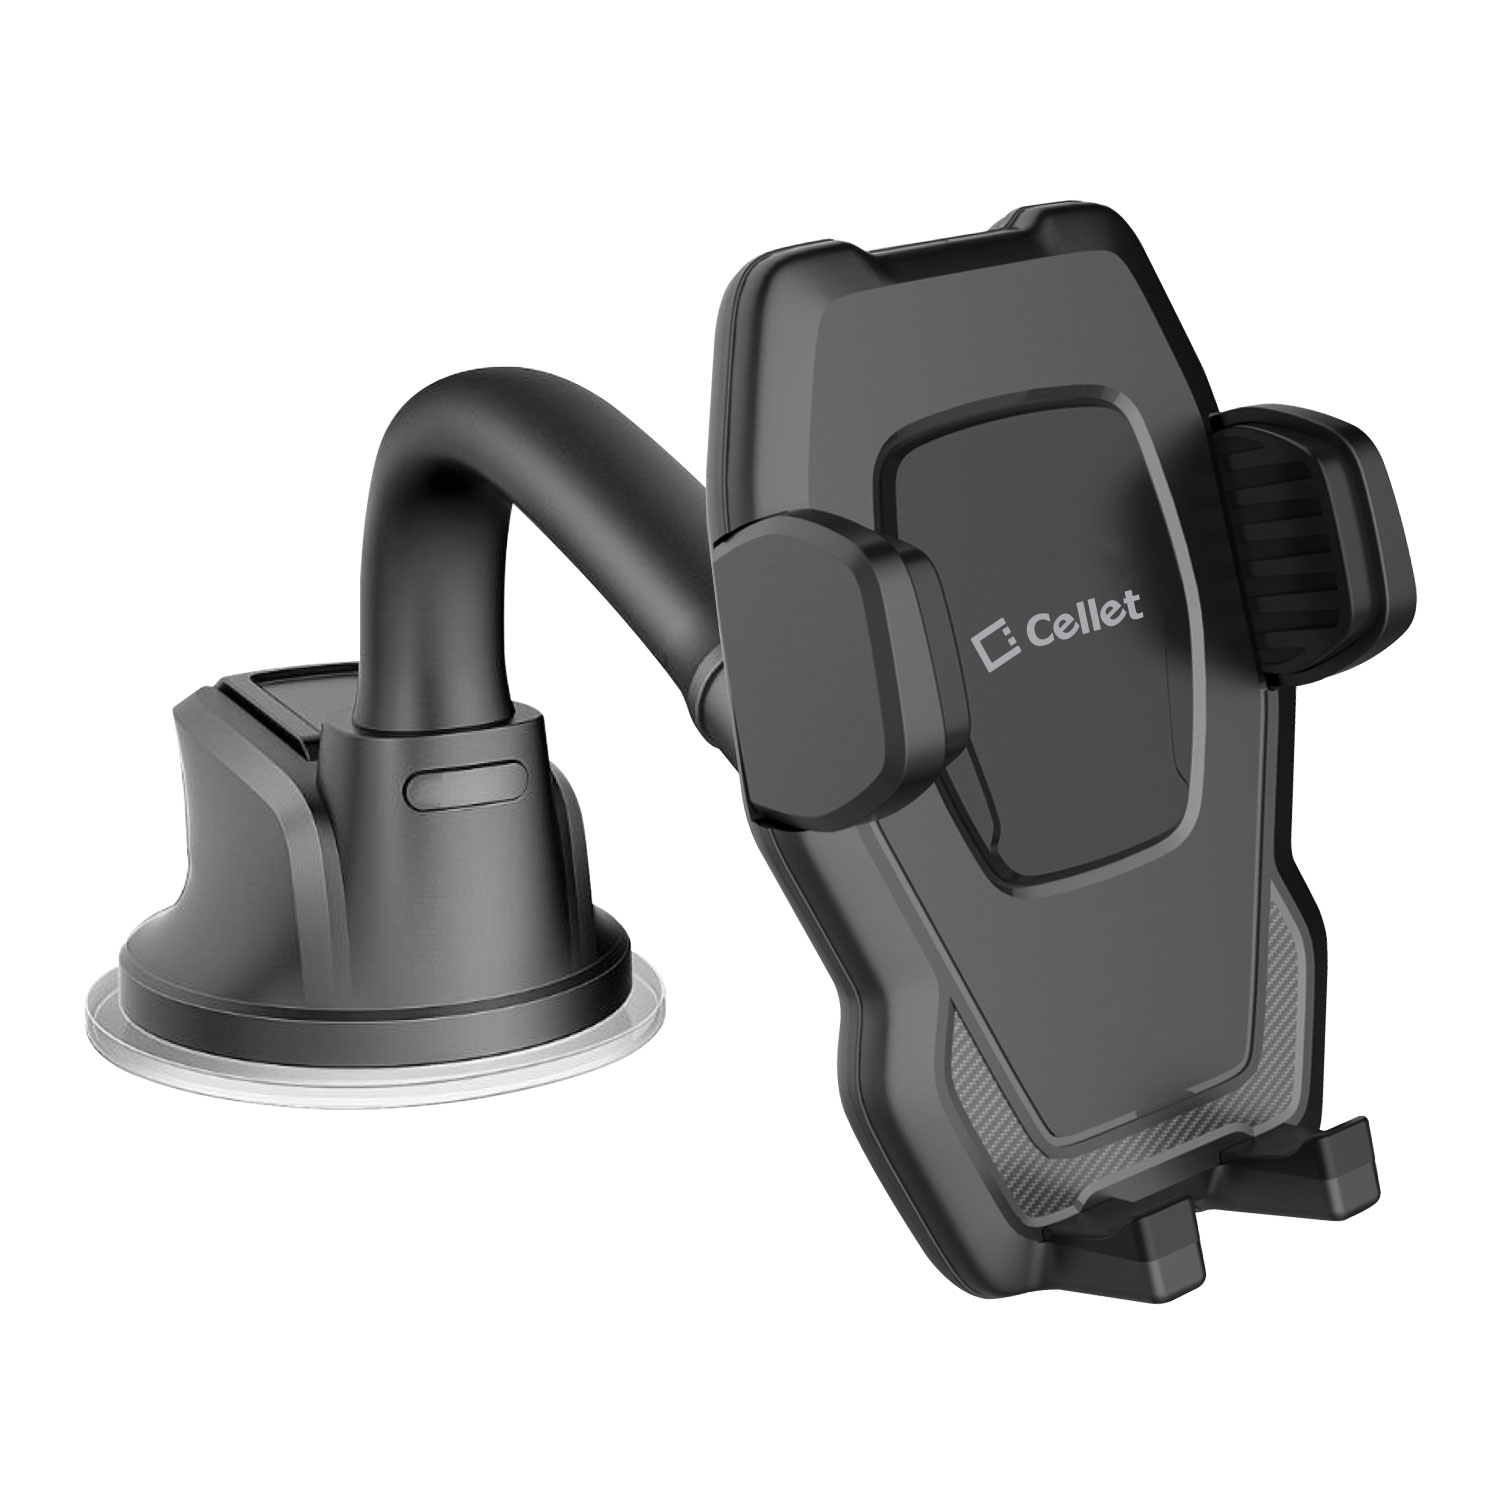 Coolpad Snap Windshield Phone Holder Goose Neck Black